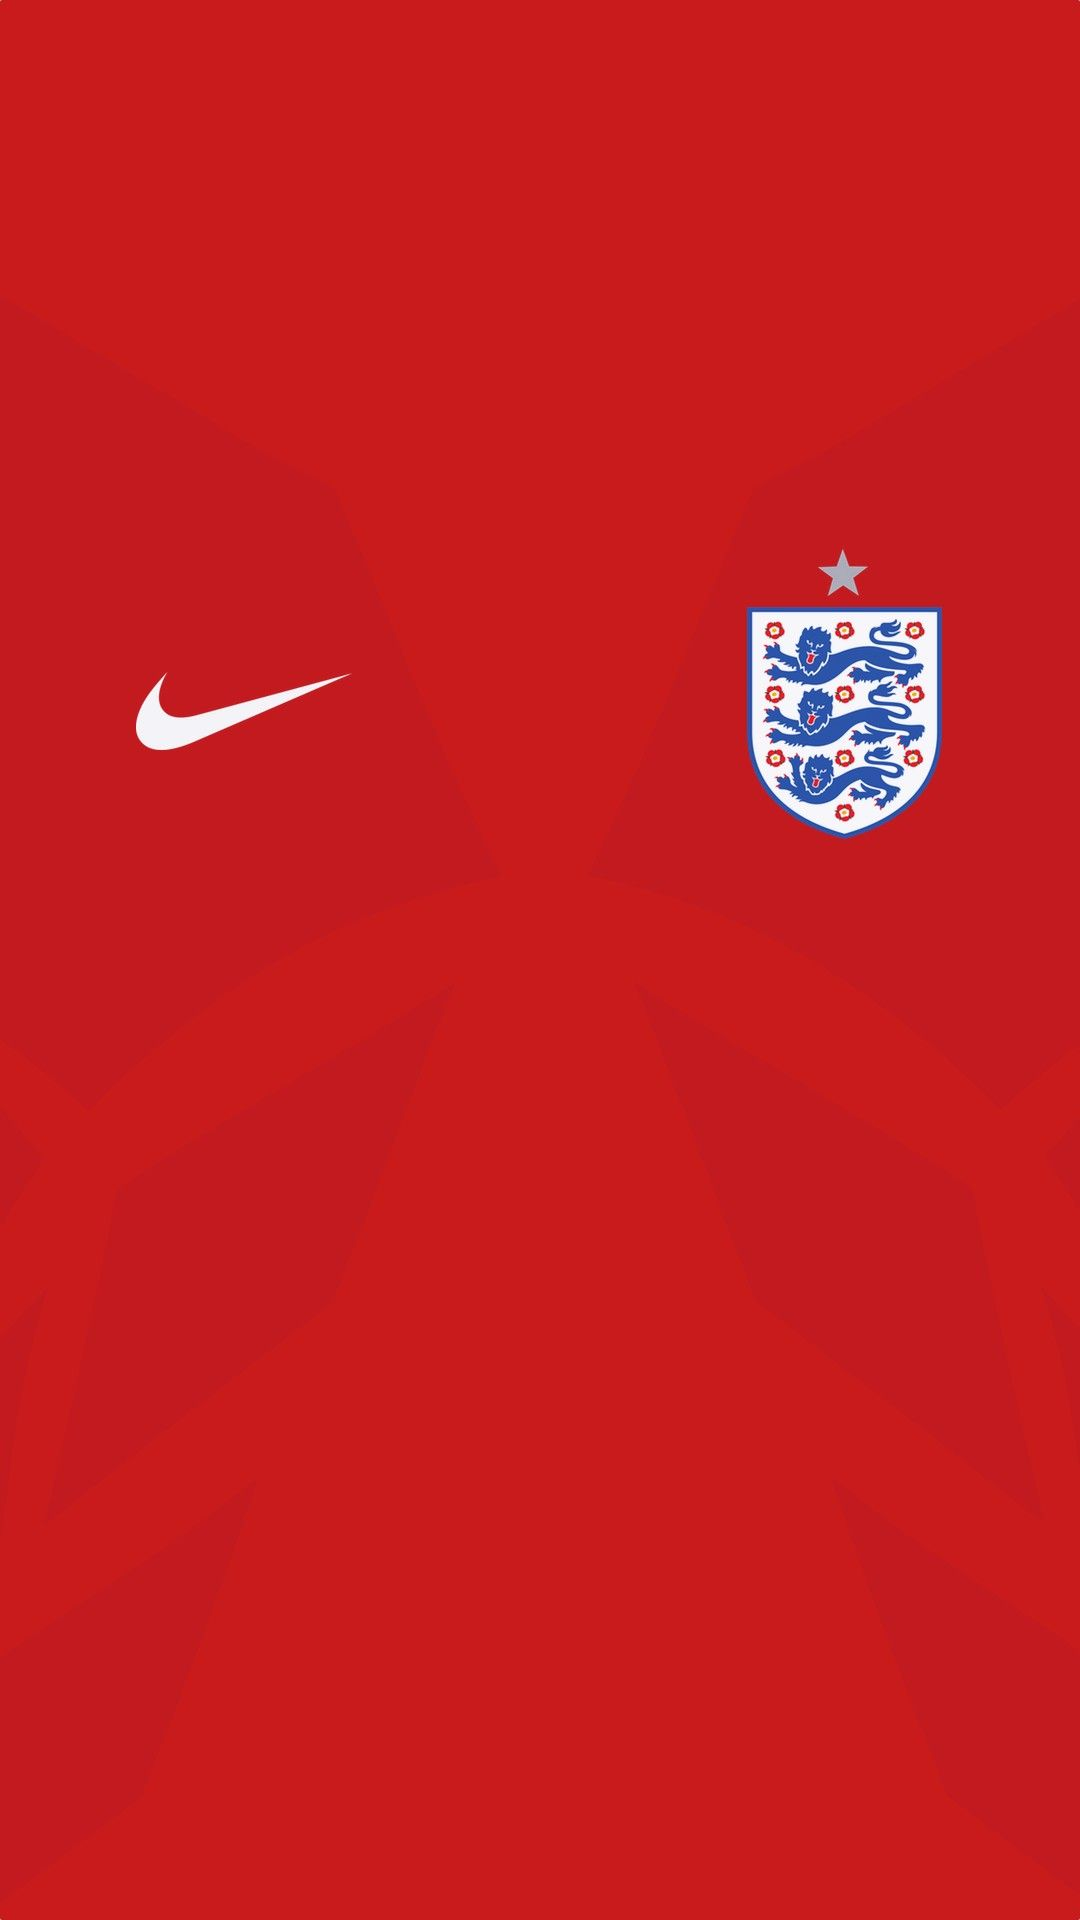 Pin By Ahmed Kamel On Soccer Kits England National Football Team England Football Team England Football Jersey